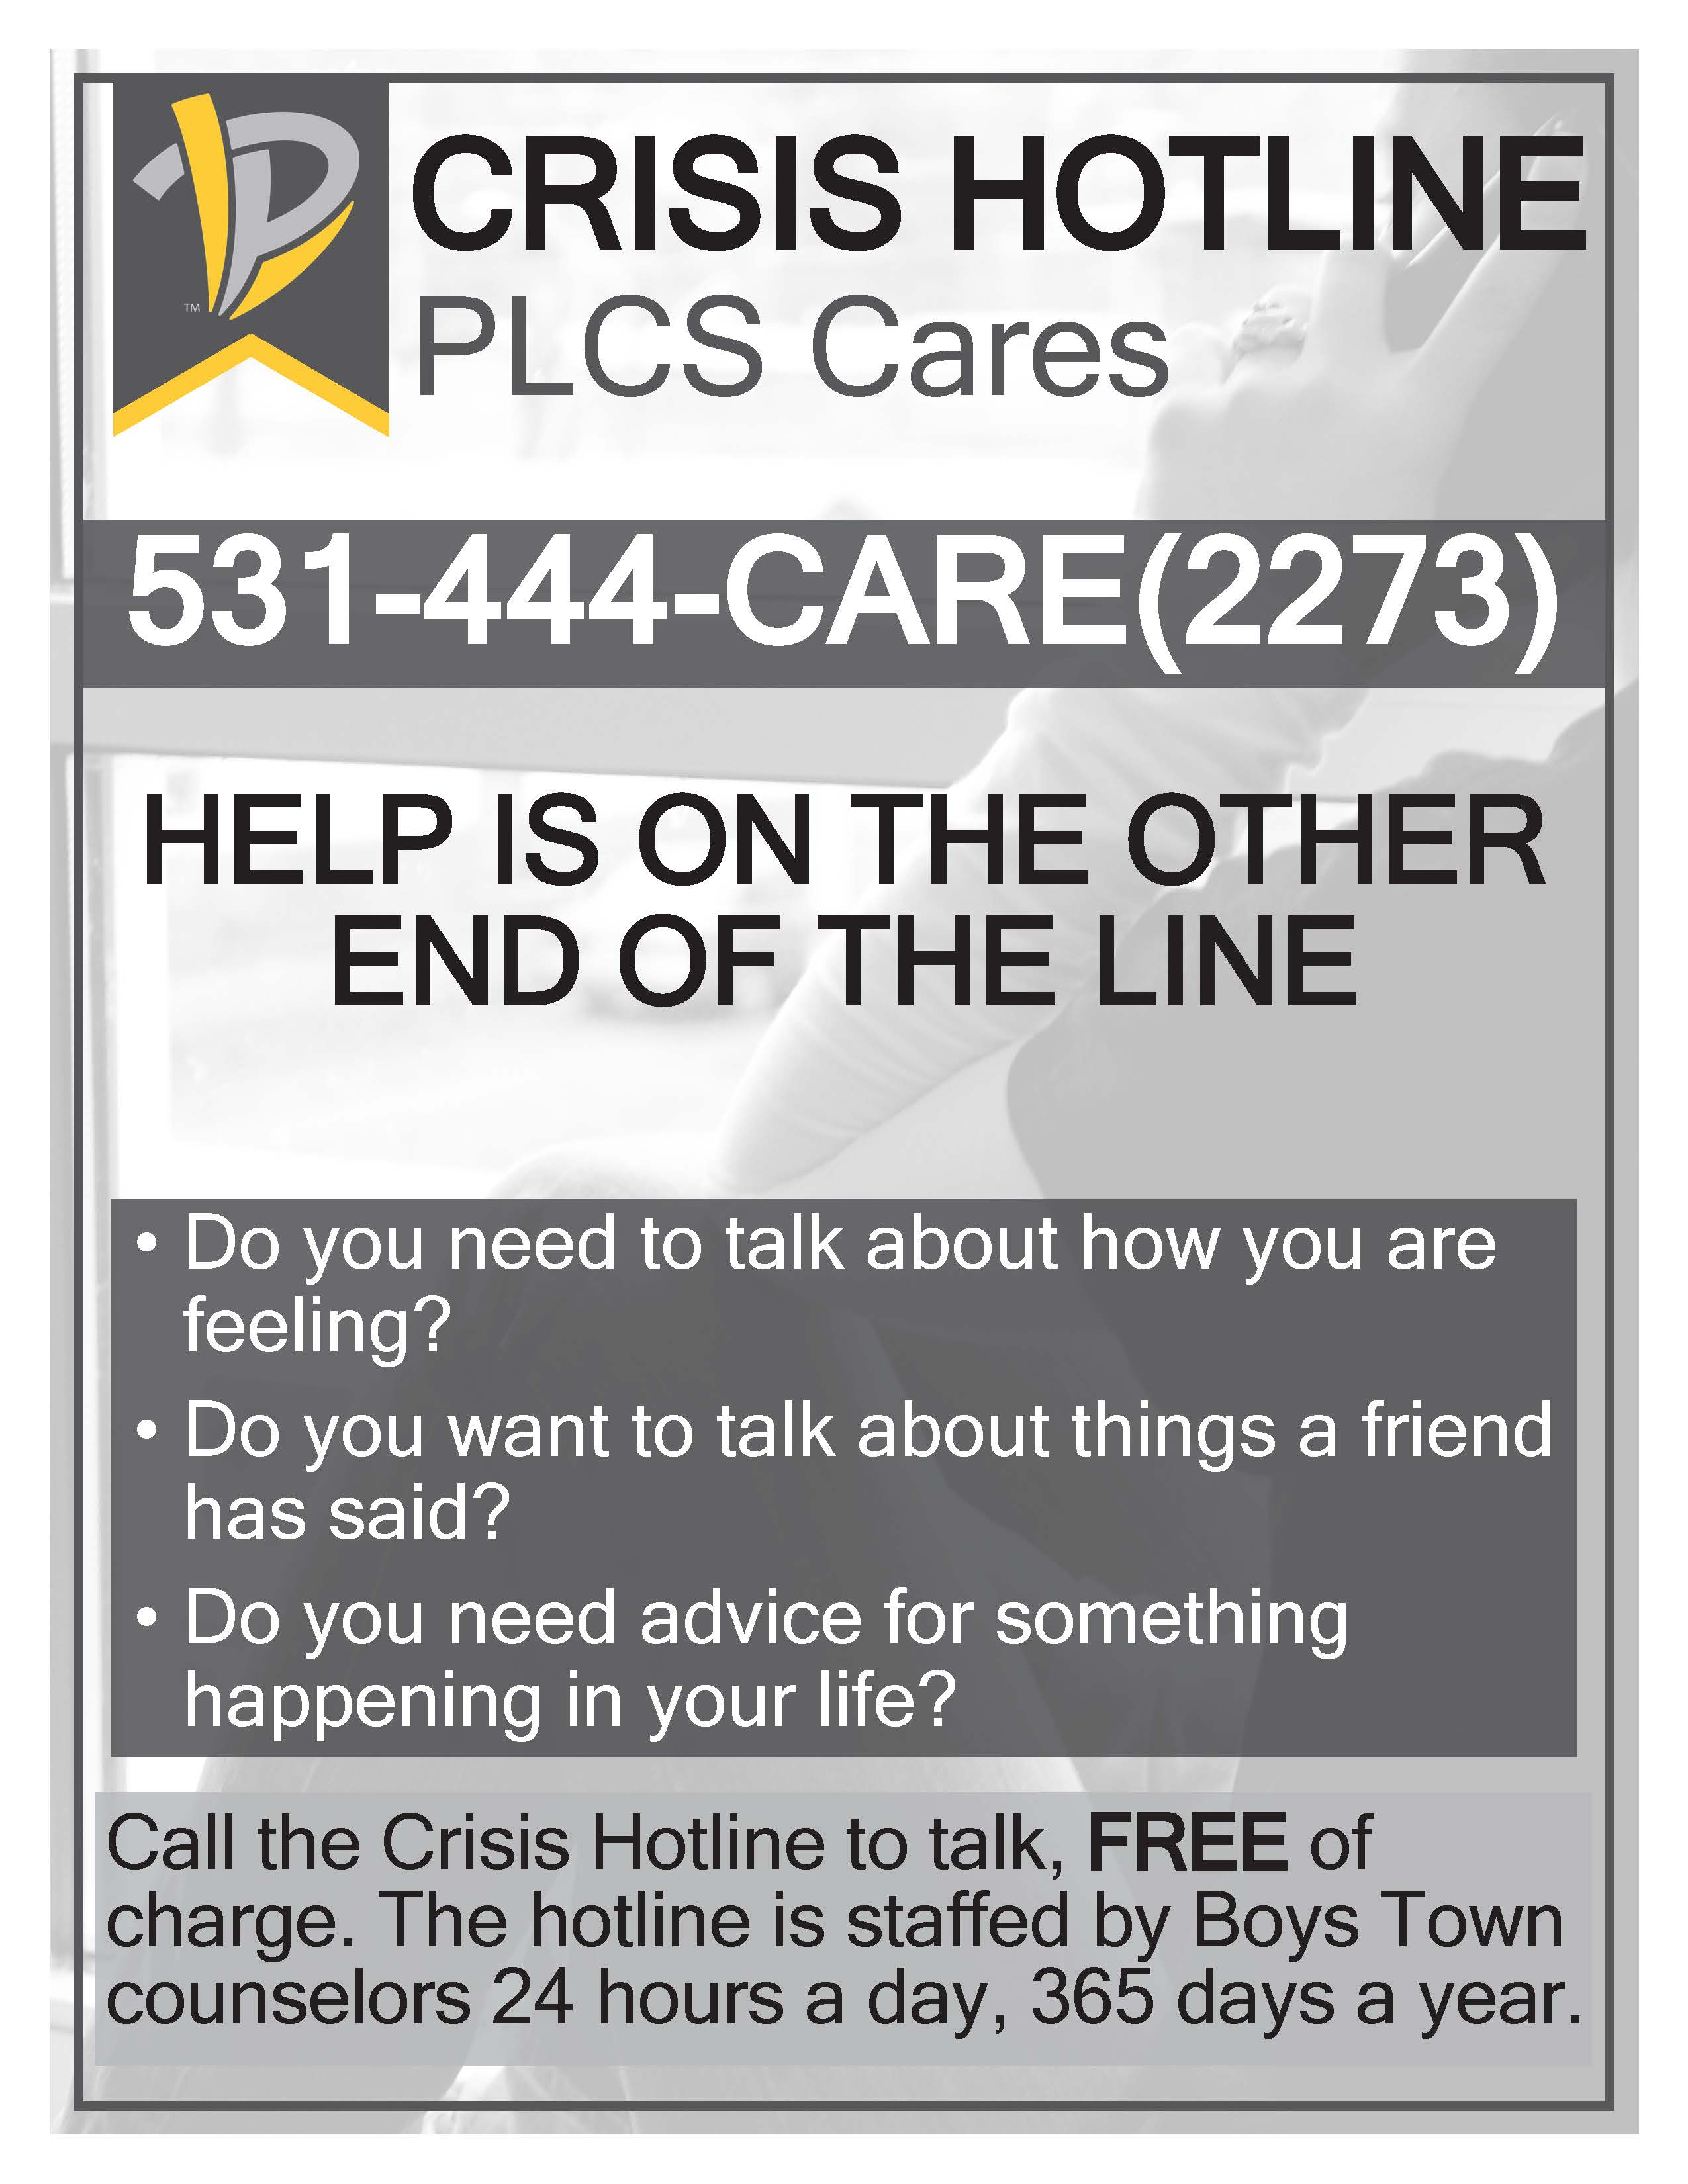 Crisis Hotline Poster